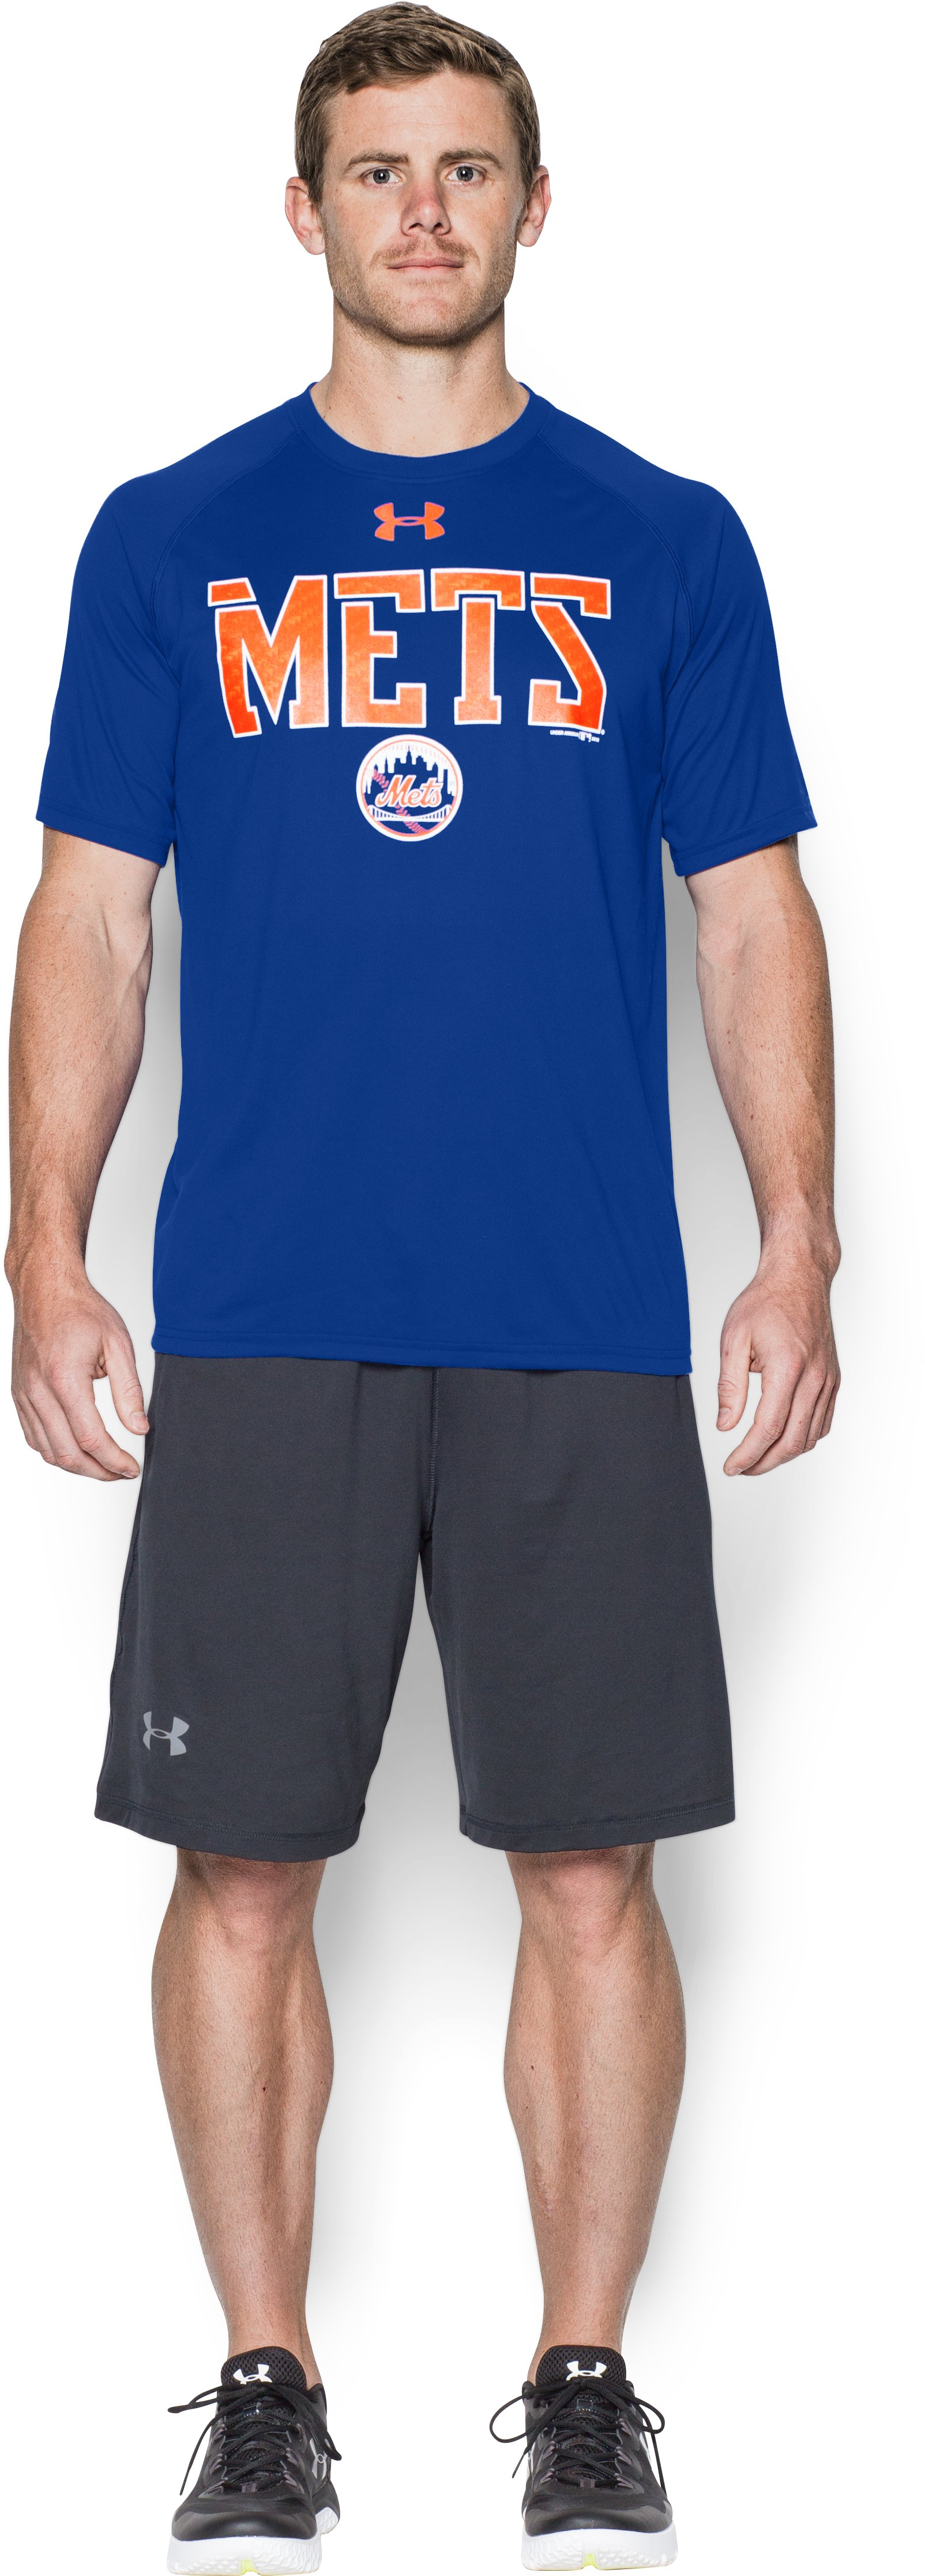 Men's New York Mets Team Tech™ T-Shirt, Royal, Front